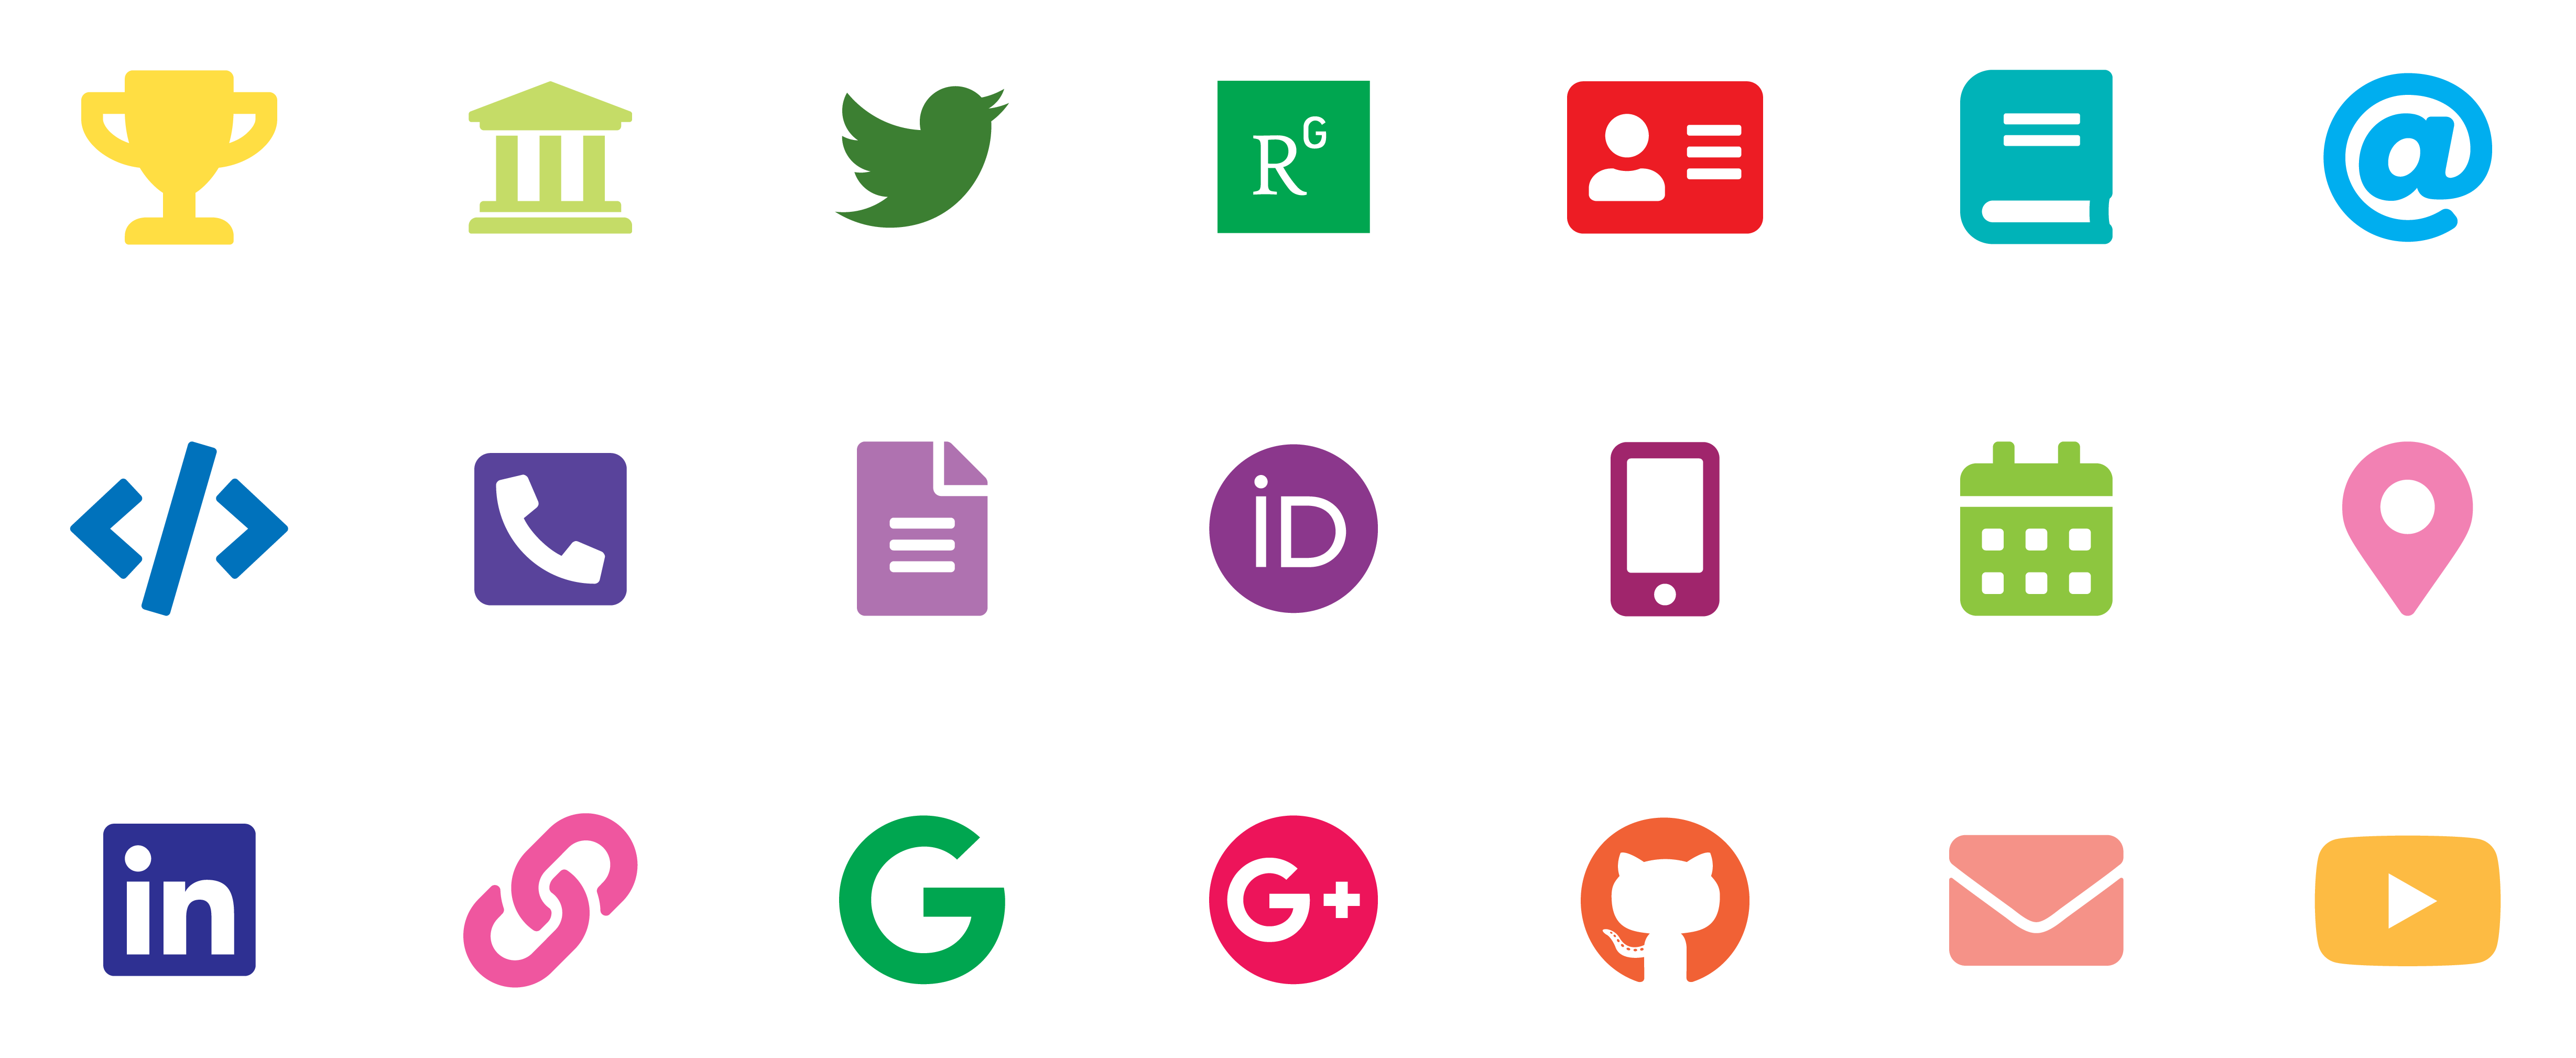 FontAwesome LaTeX TikZ icons